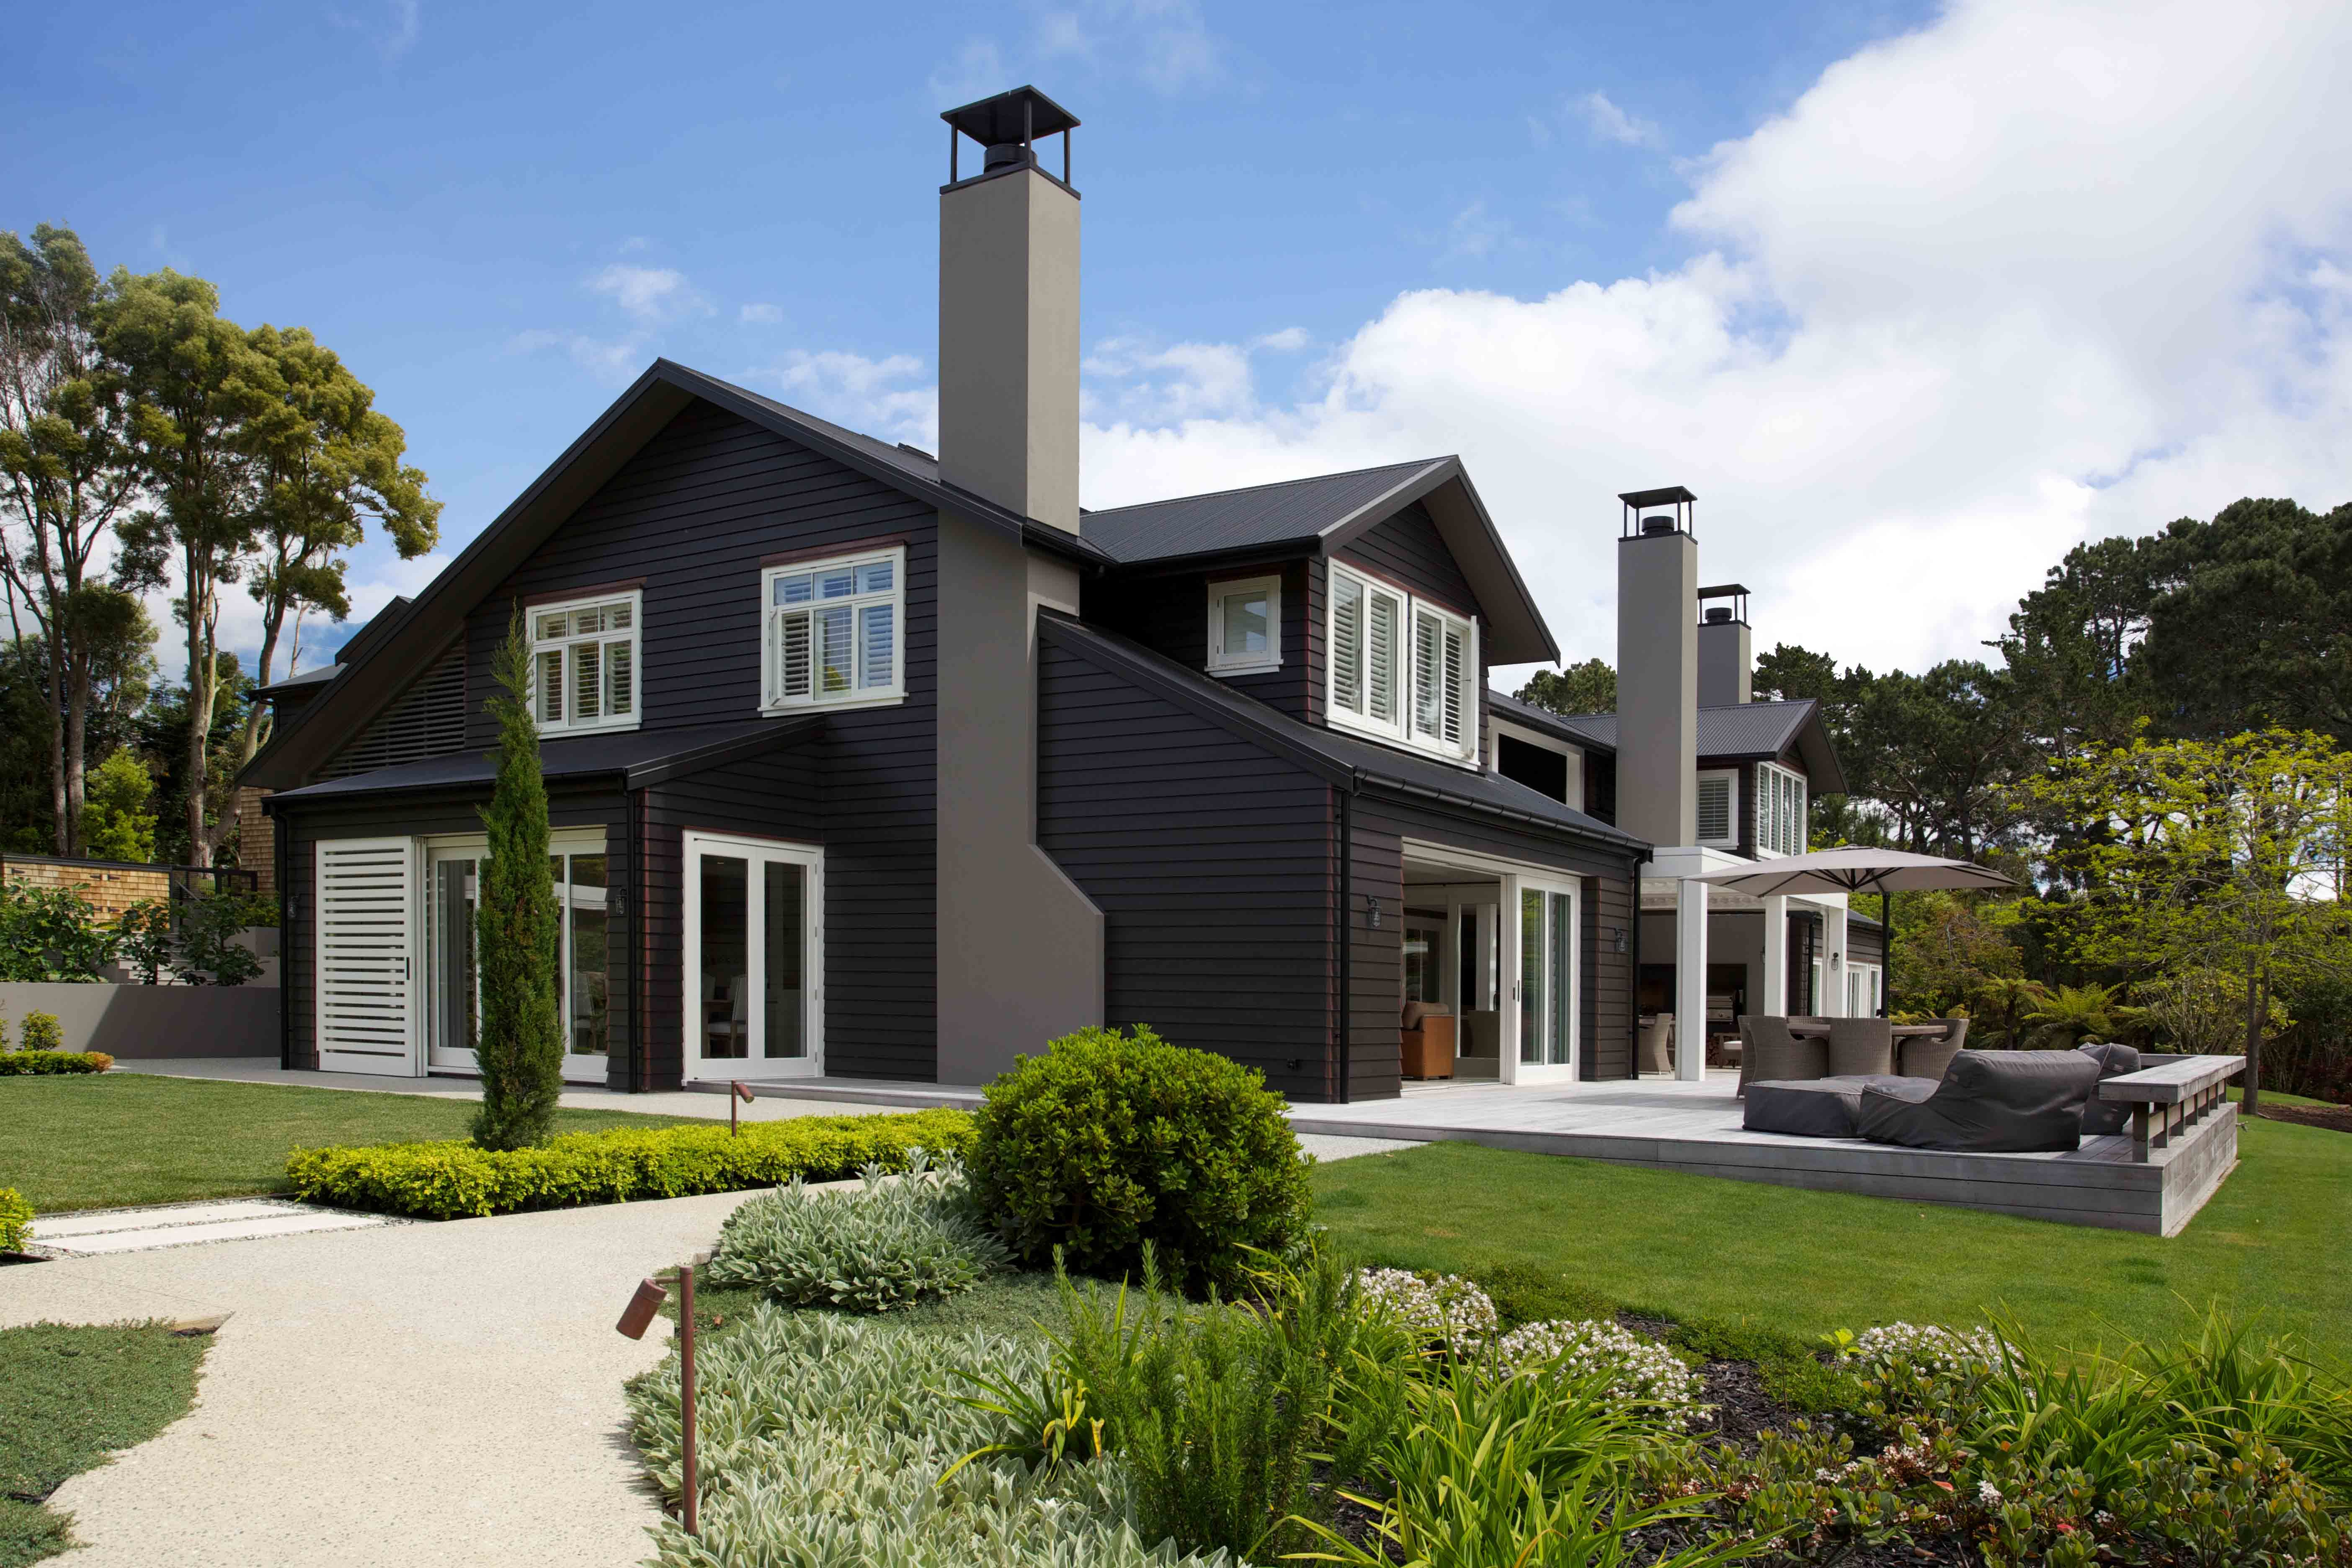 Colorsteel 174 Roofing Auckland White Exterior Houses